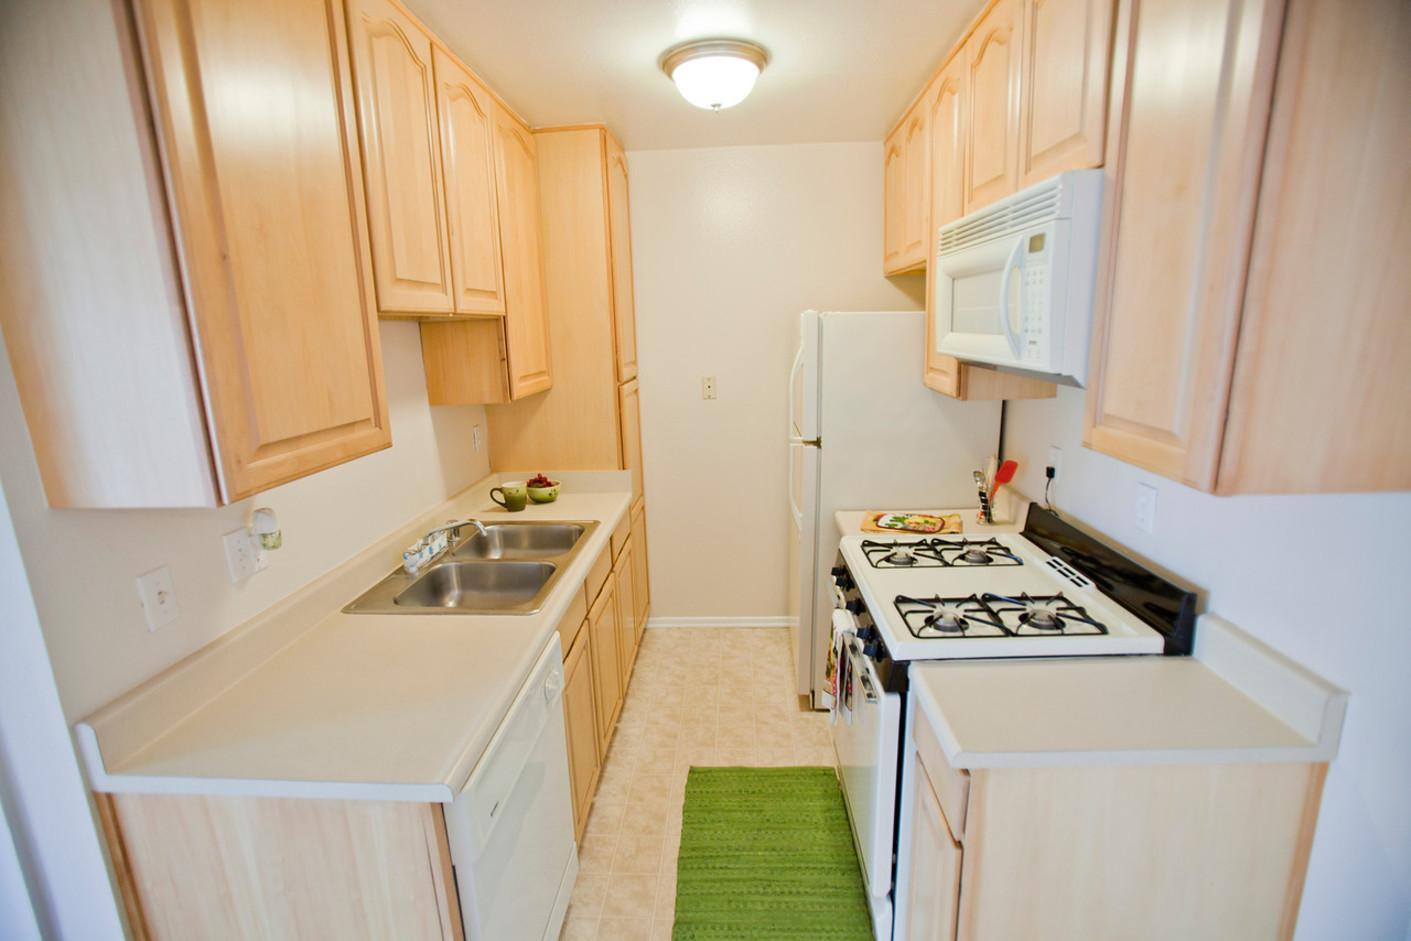 125 W Olive Ave #104, Monrovia, CA - $1,790 USD/ month